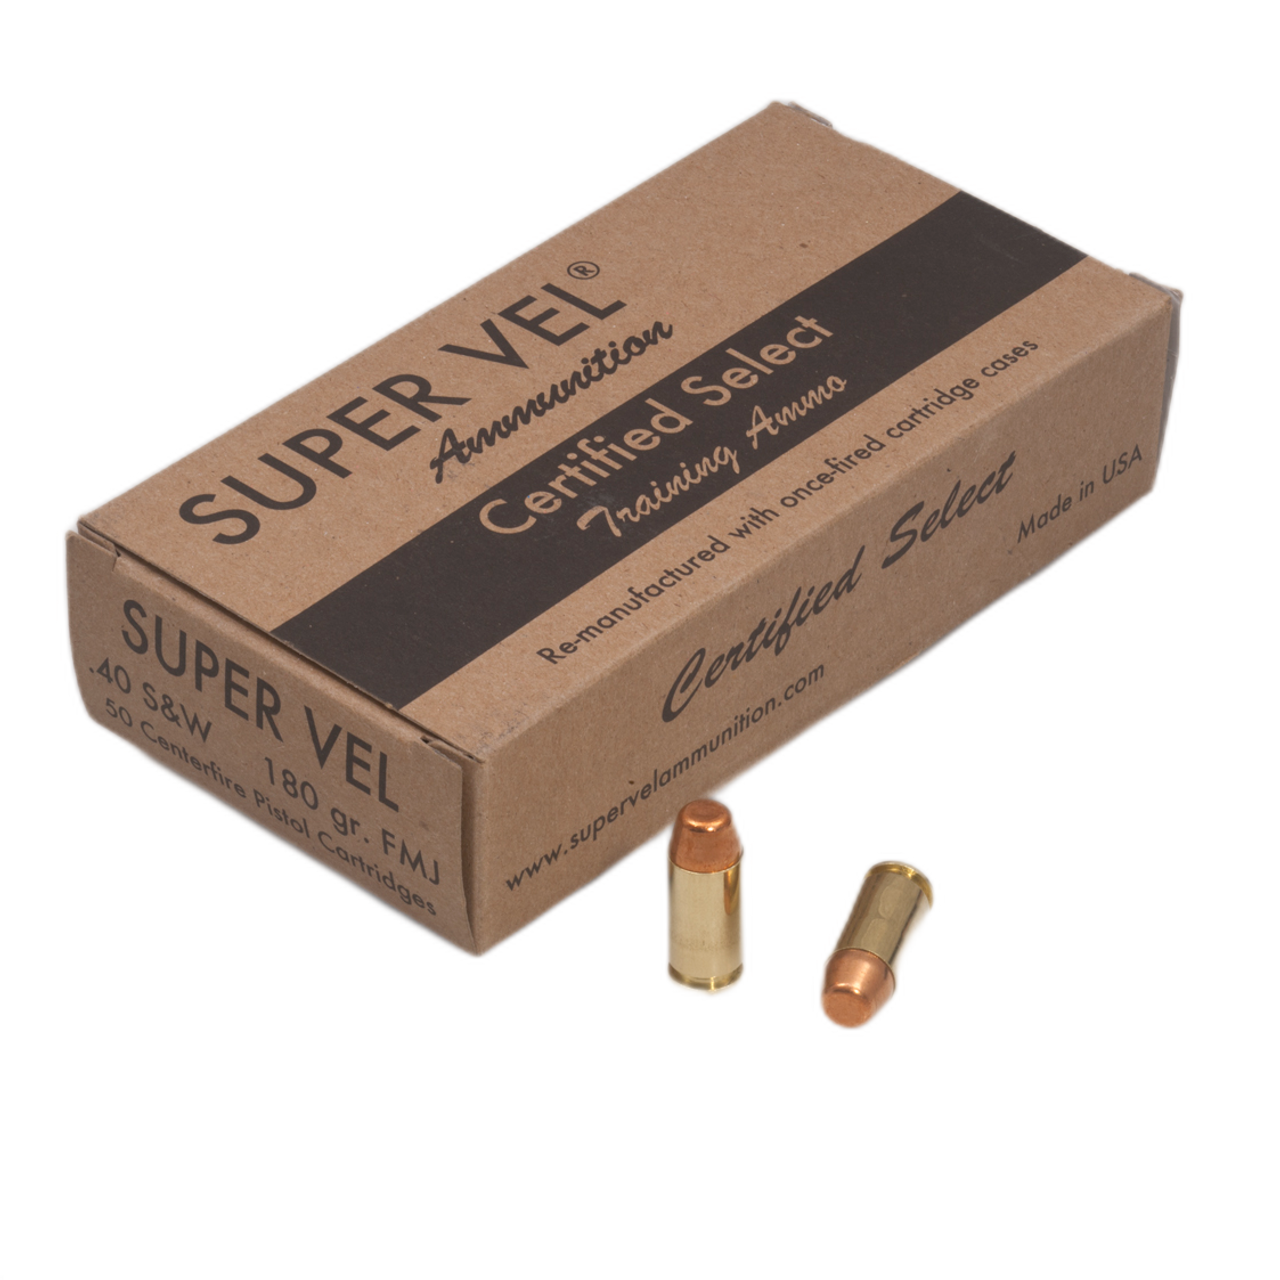 .40 S&W 180 gr. Competition Long  (50-count box)